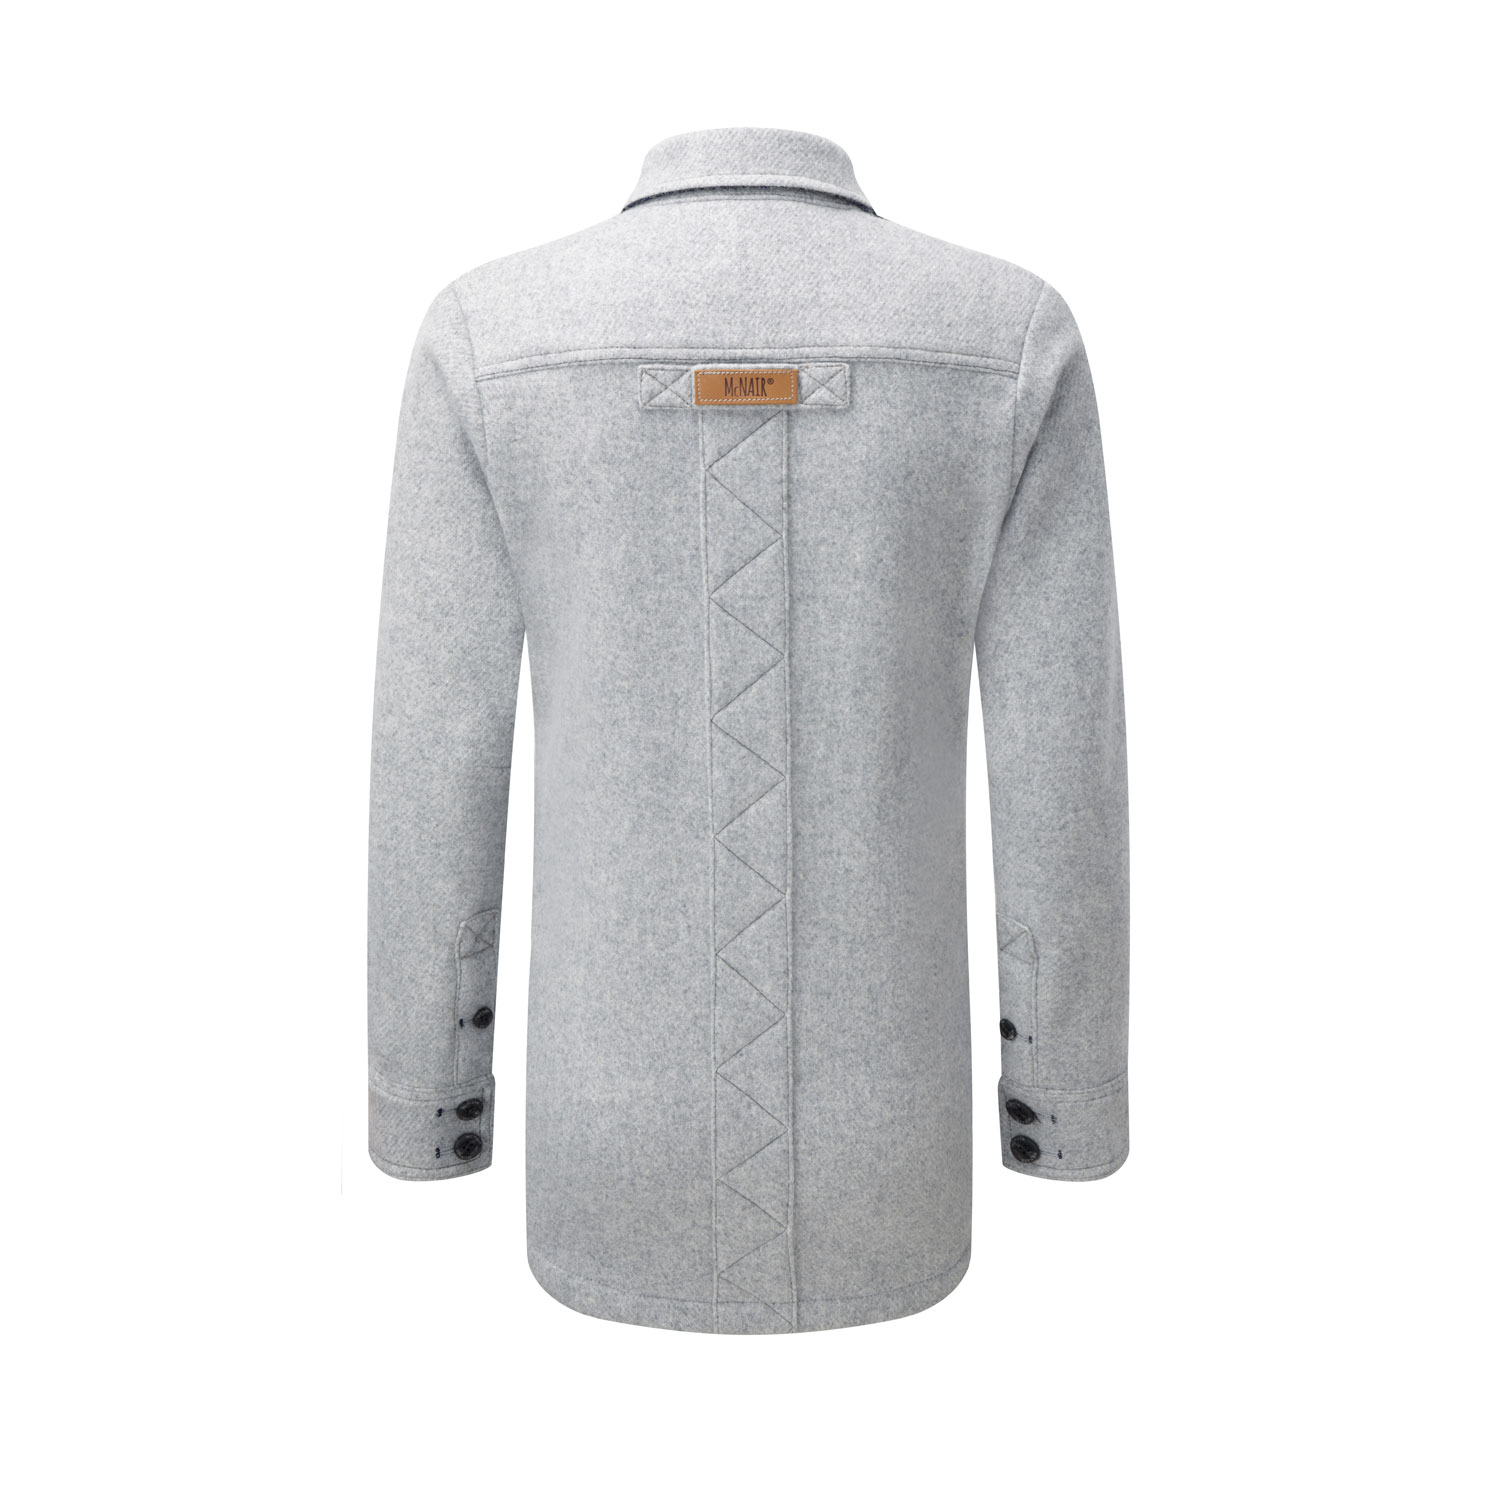 McNair women's merino fell shirt in silver